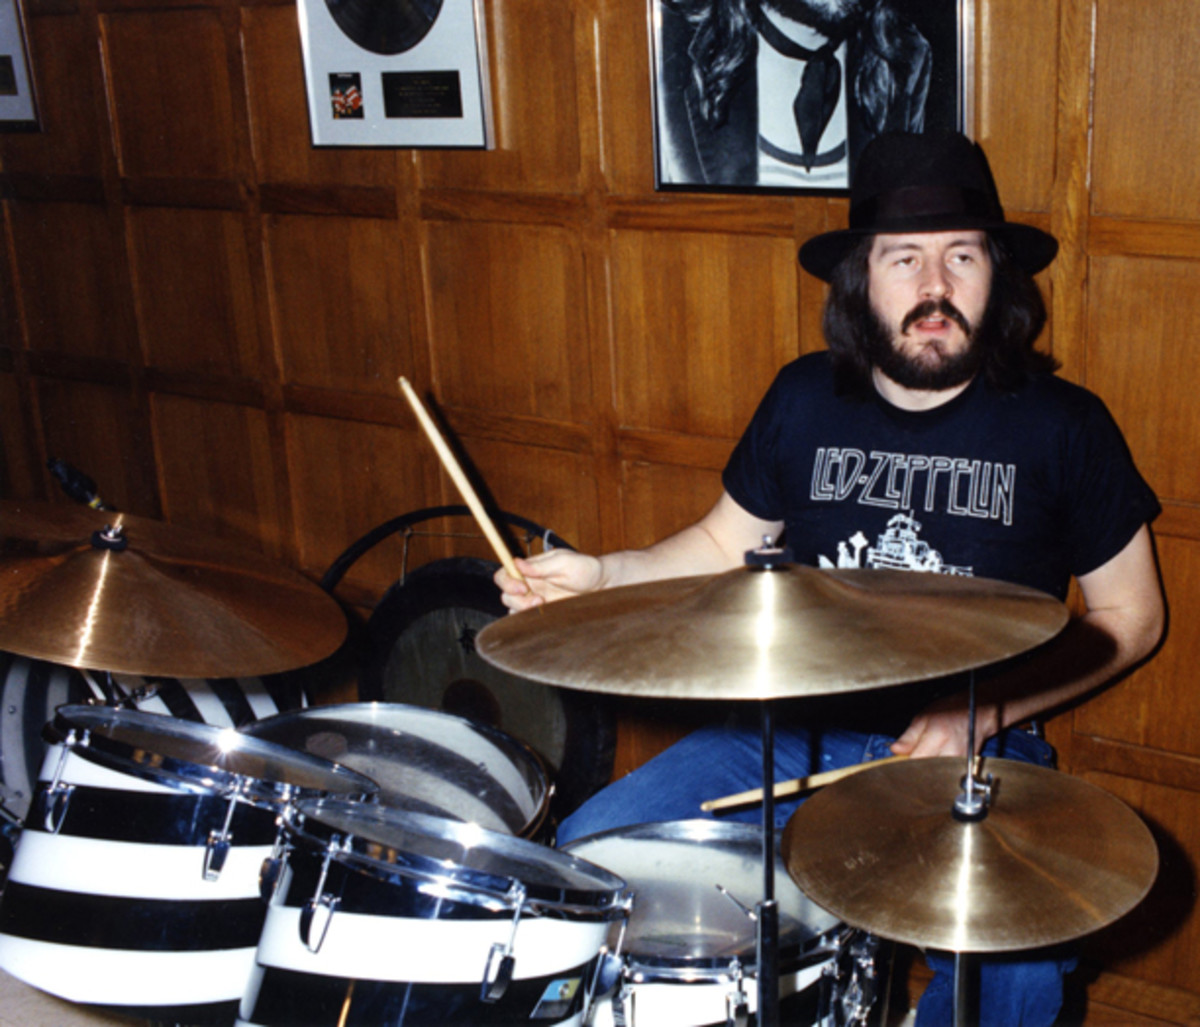 John Bonham drumming and wearing hat